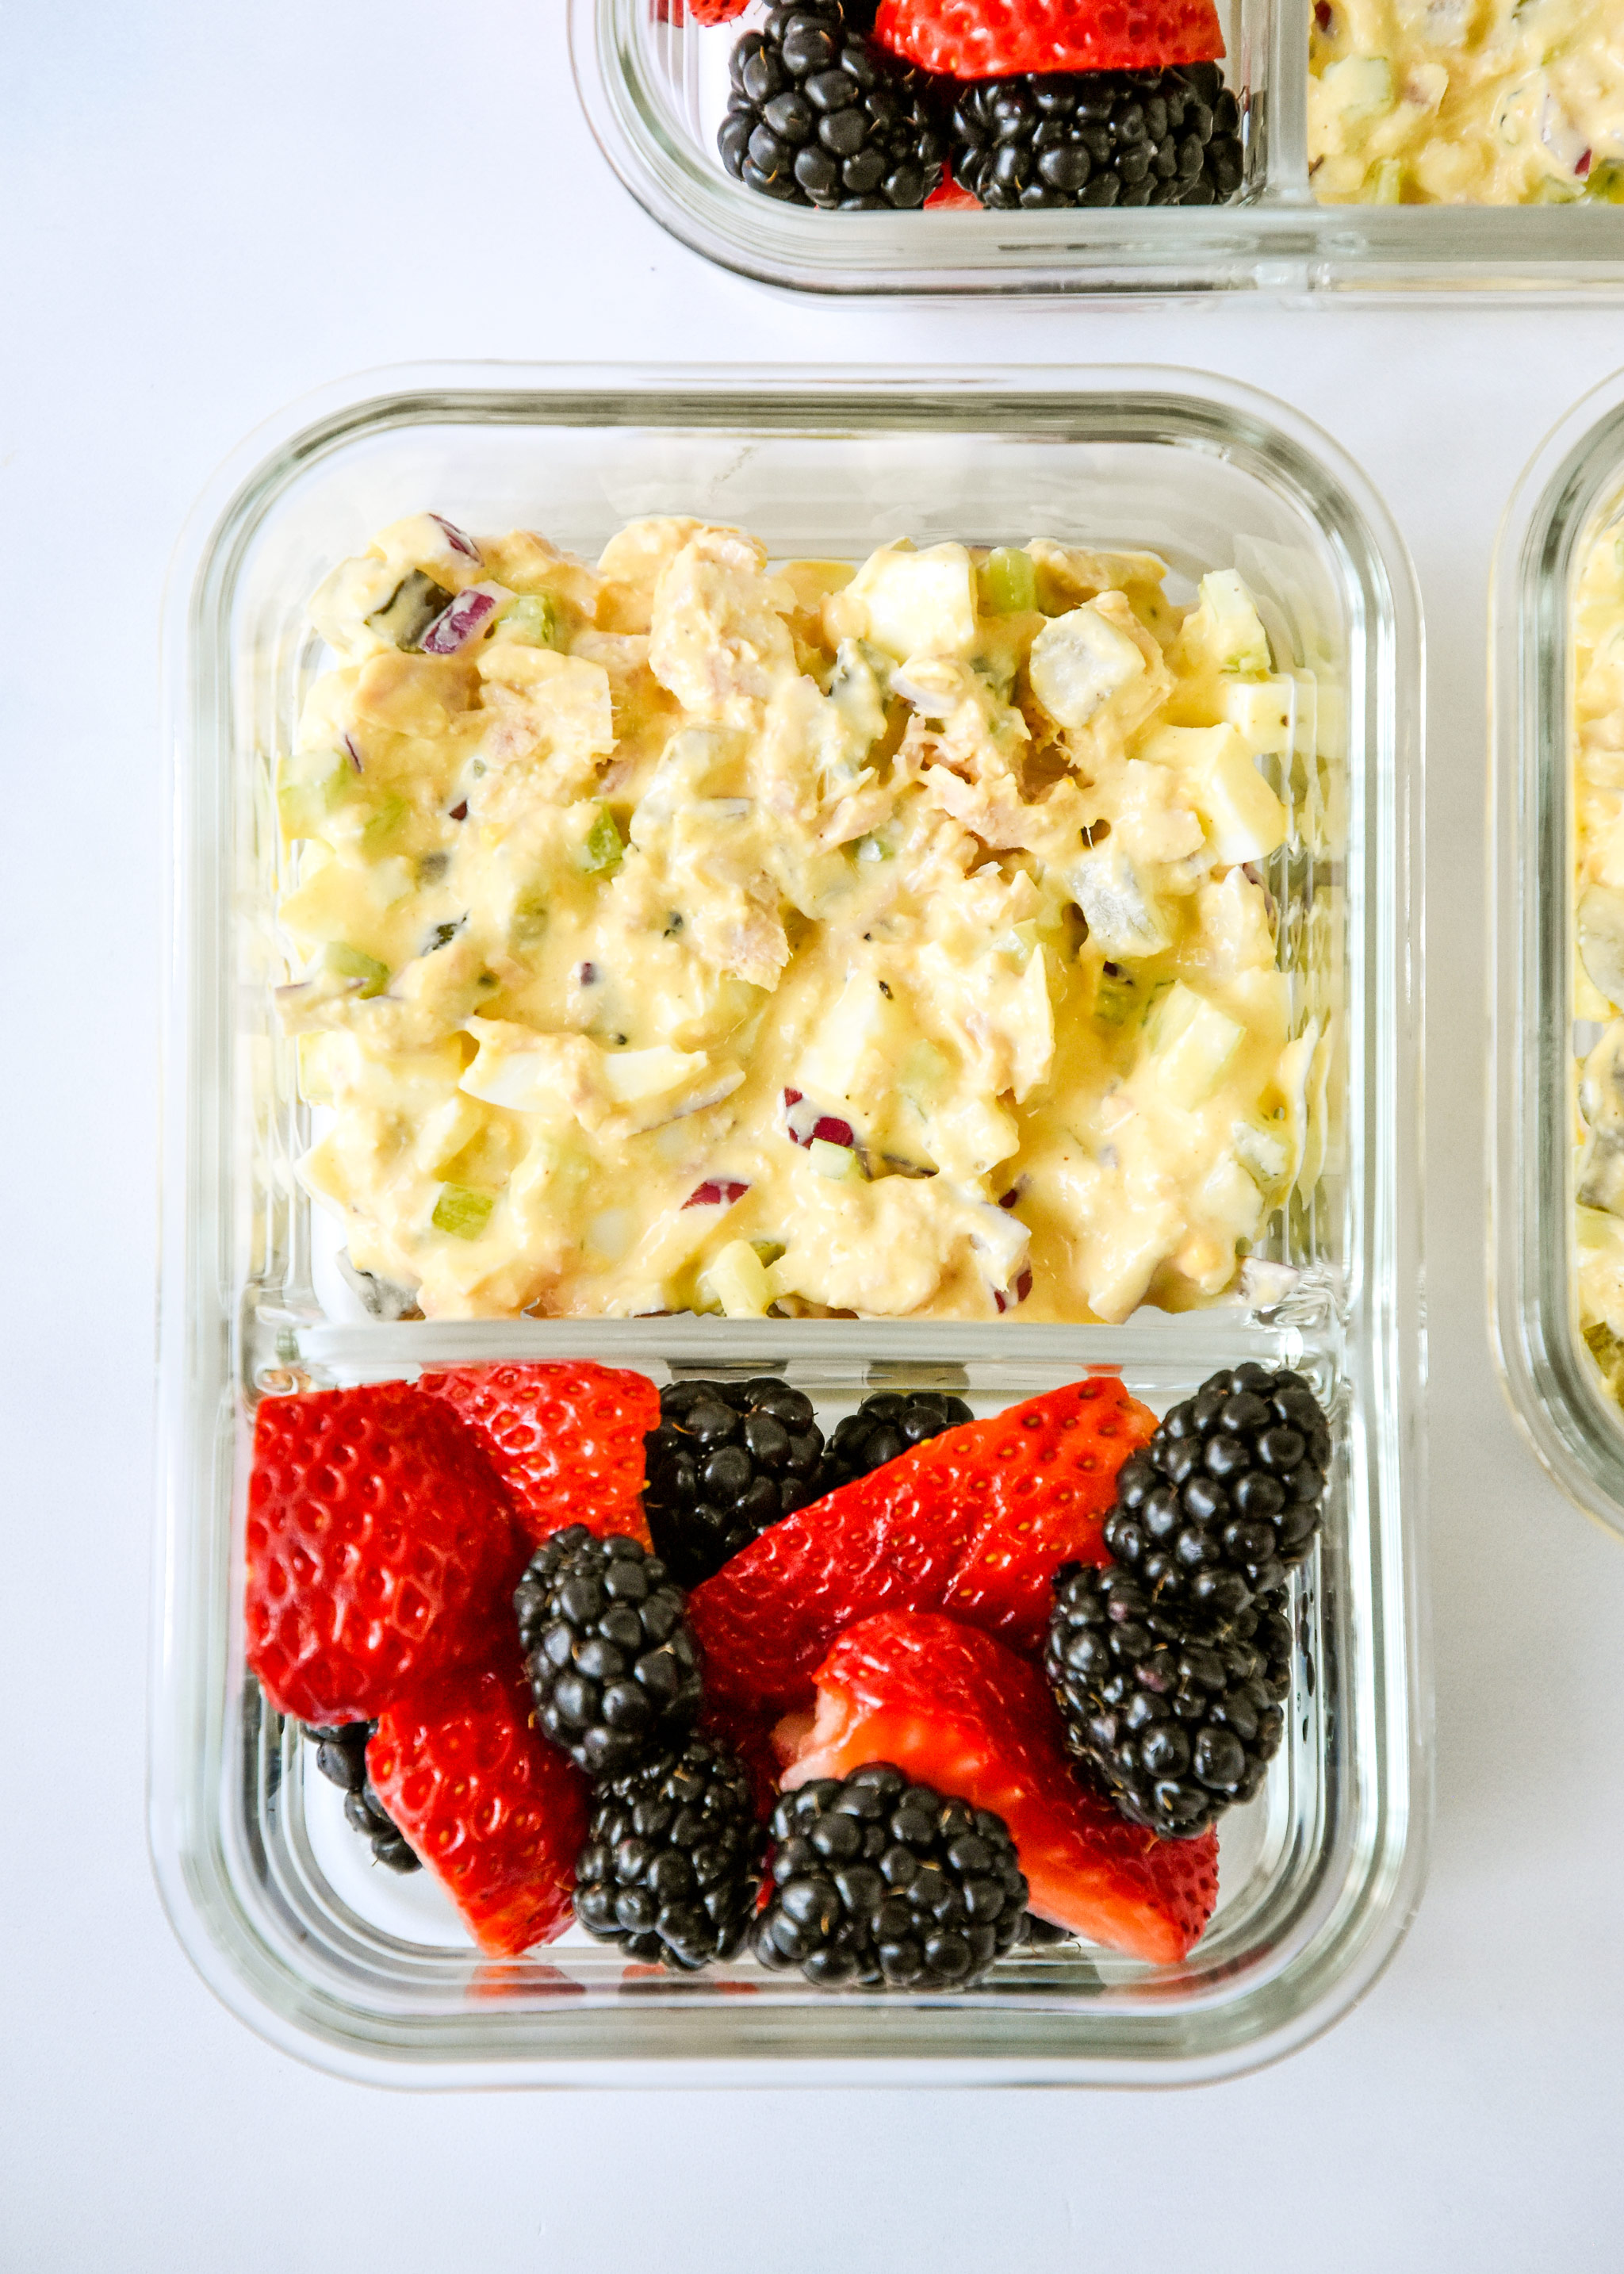 tuna egg salad in a meal prep container with fresh berries.